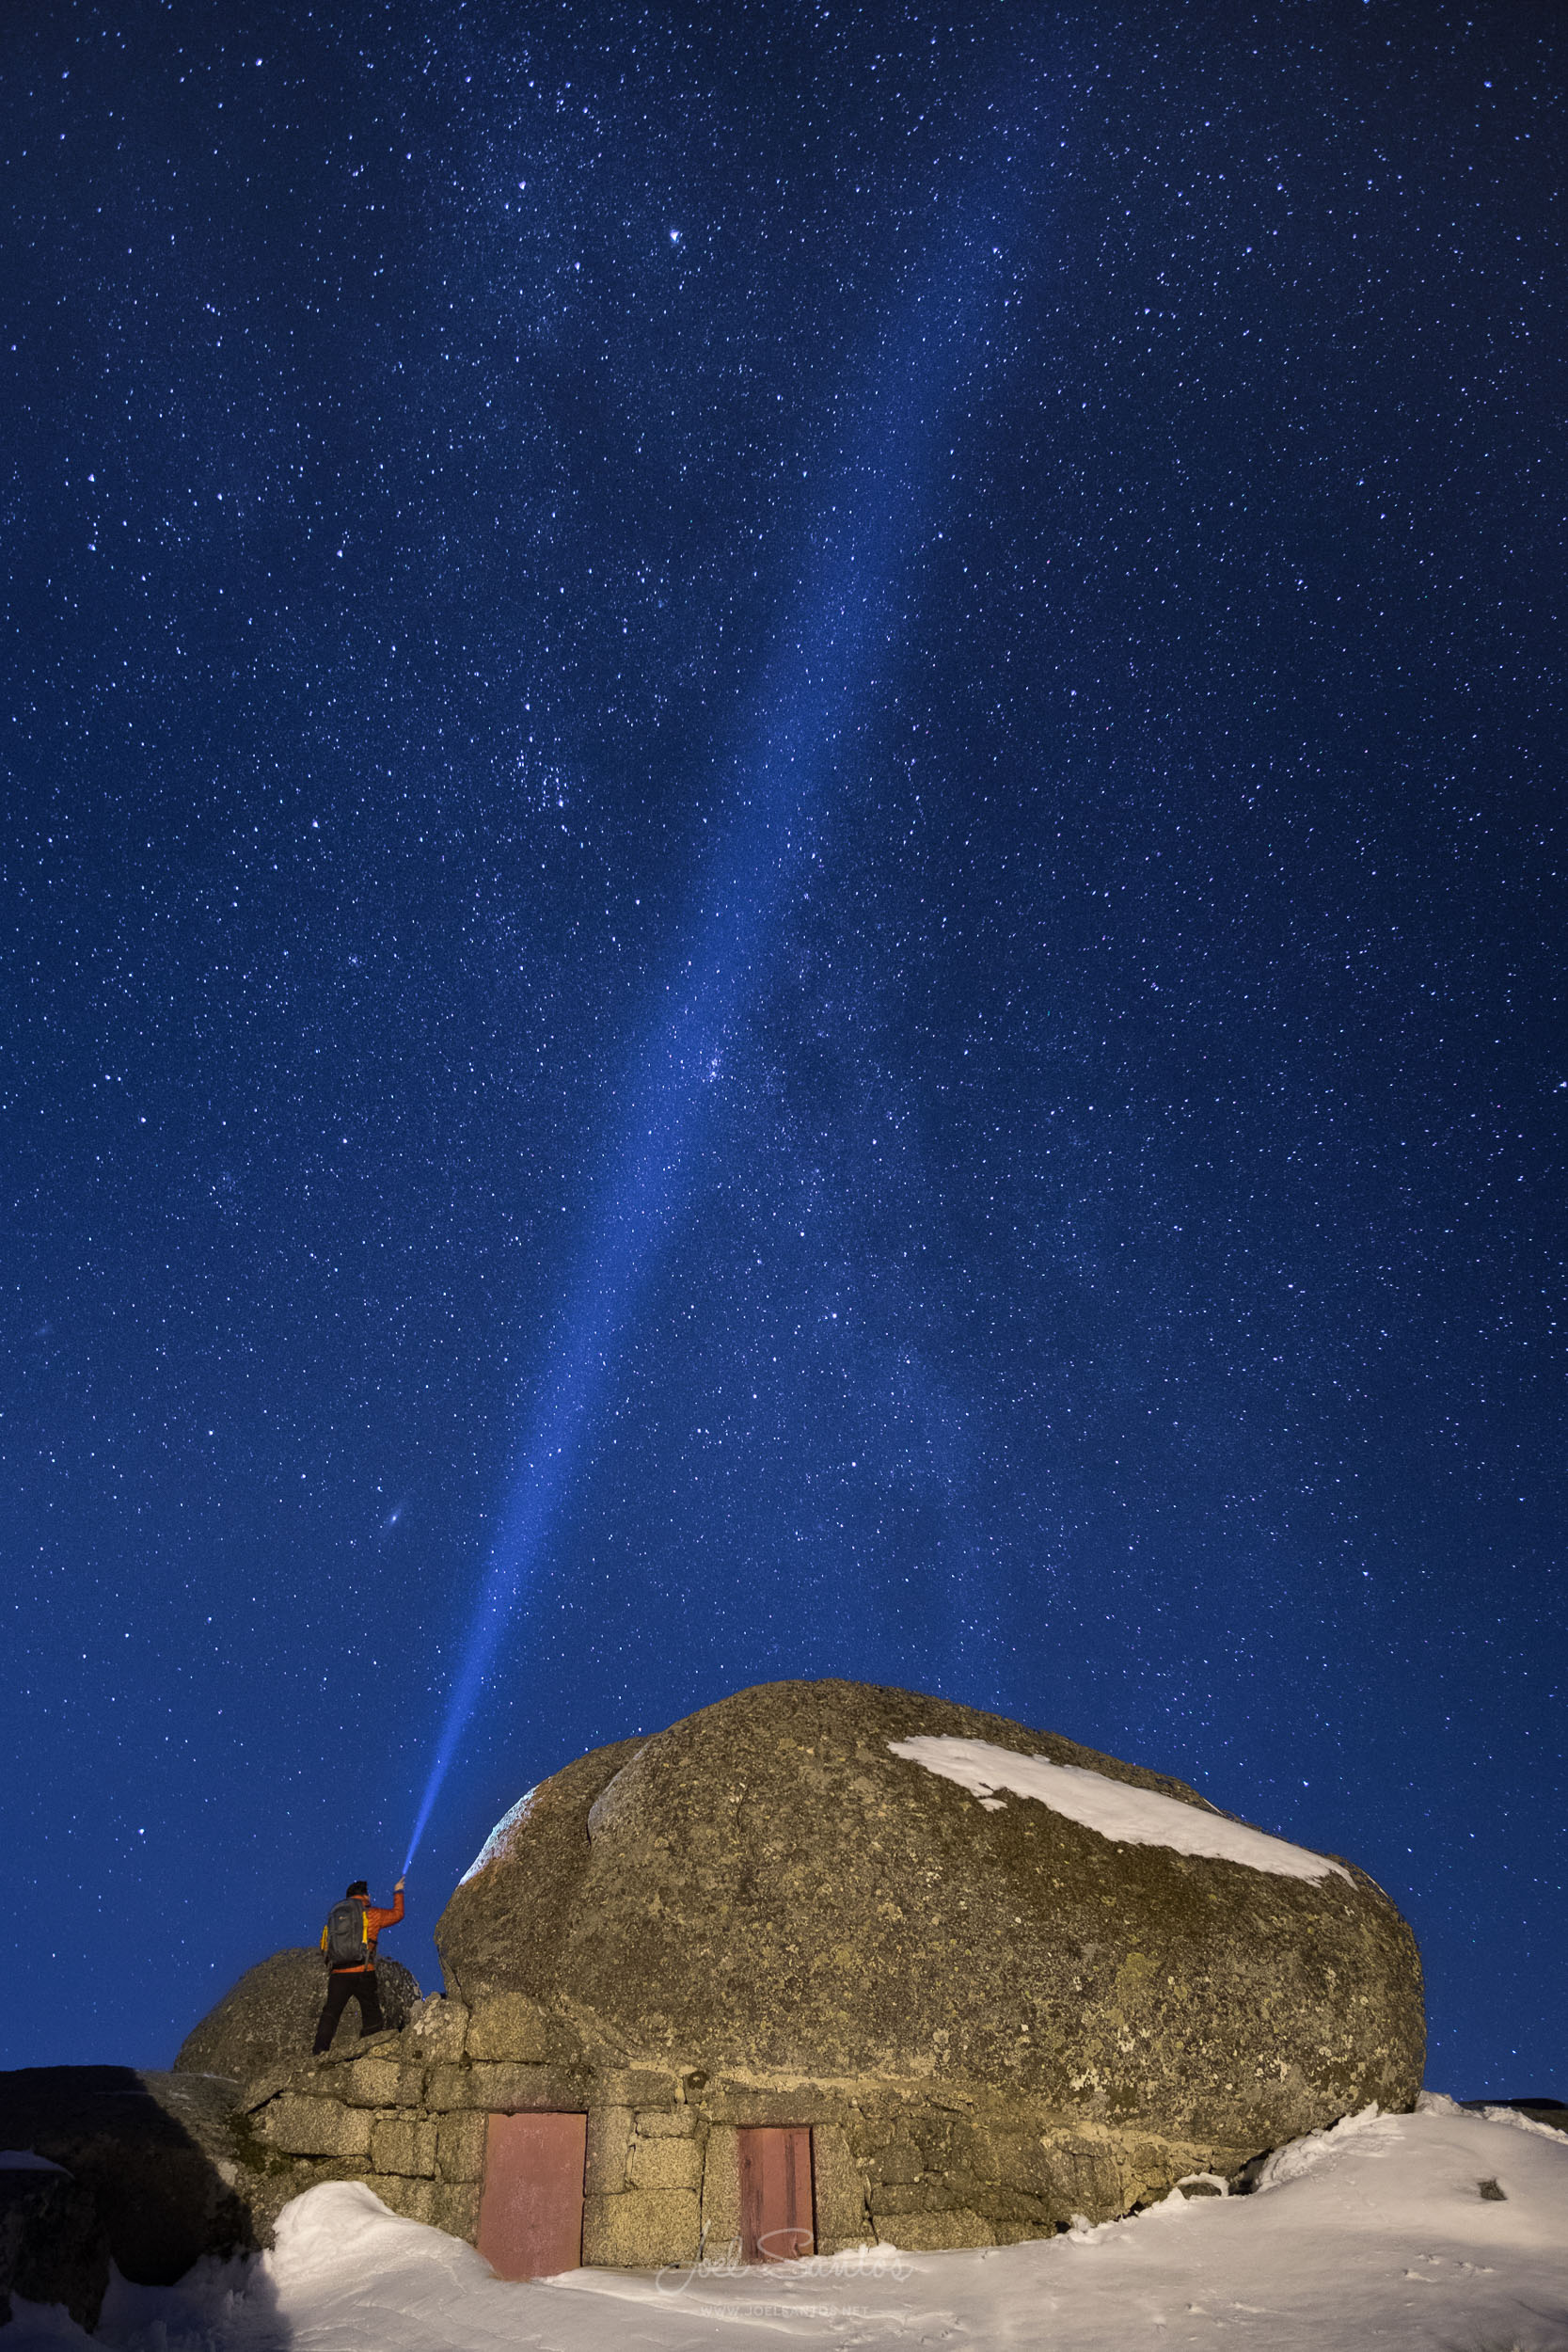 Rock house, under the starry sky, Serra da Estrela, Portugal